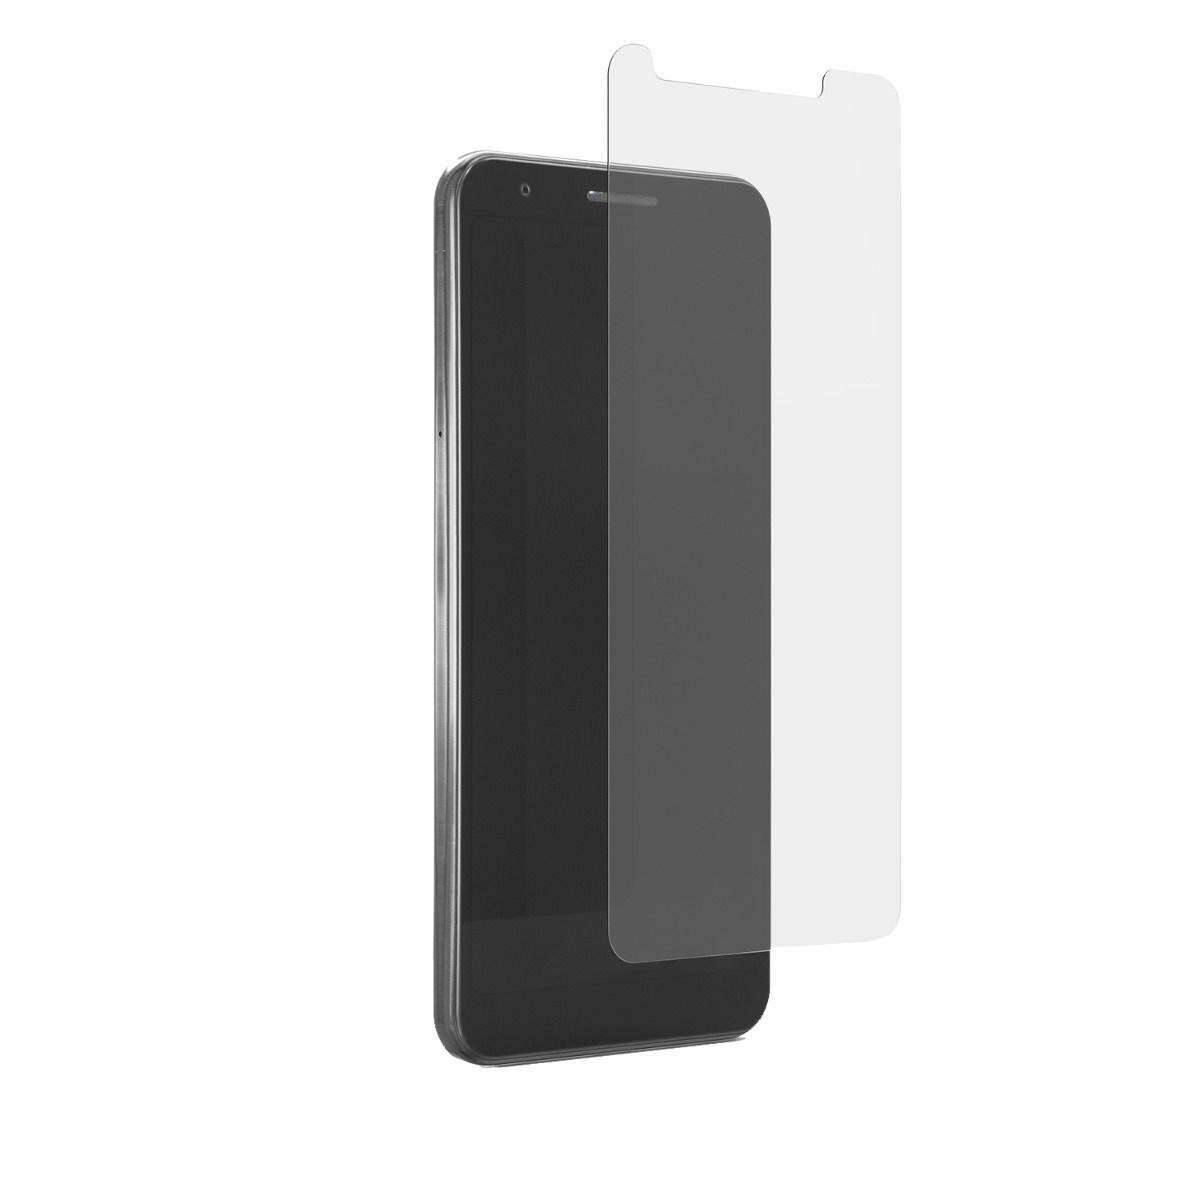 Samsung Galaxy Note9 High-Definition Curved Glass Screen Protector with Alignment Tray